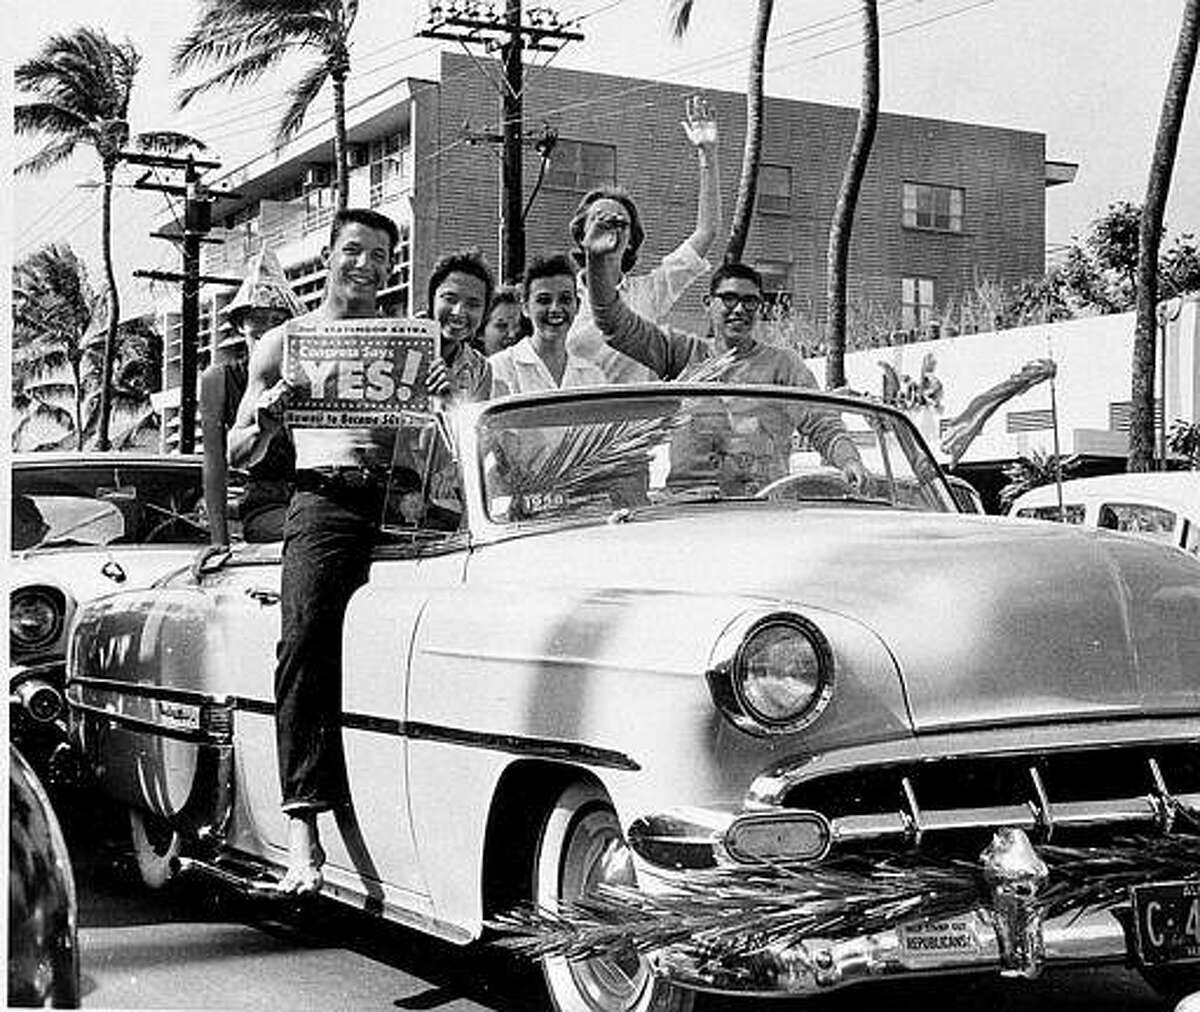 A group of supporters of statehood drive through the street in Waikiki, Honolulu, Hawaii, on March 13, 1959. Hawaii, a U.S. territory, will become the 50th state to join the Union on Aug. 21, 1959, with Honolulu as its capital. (AP Photo)